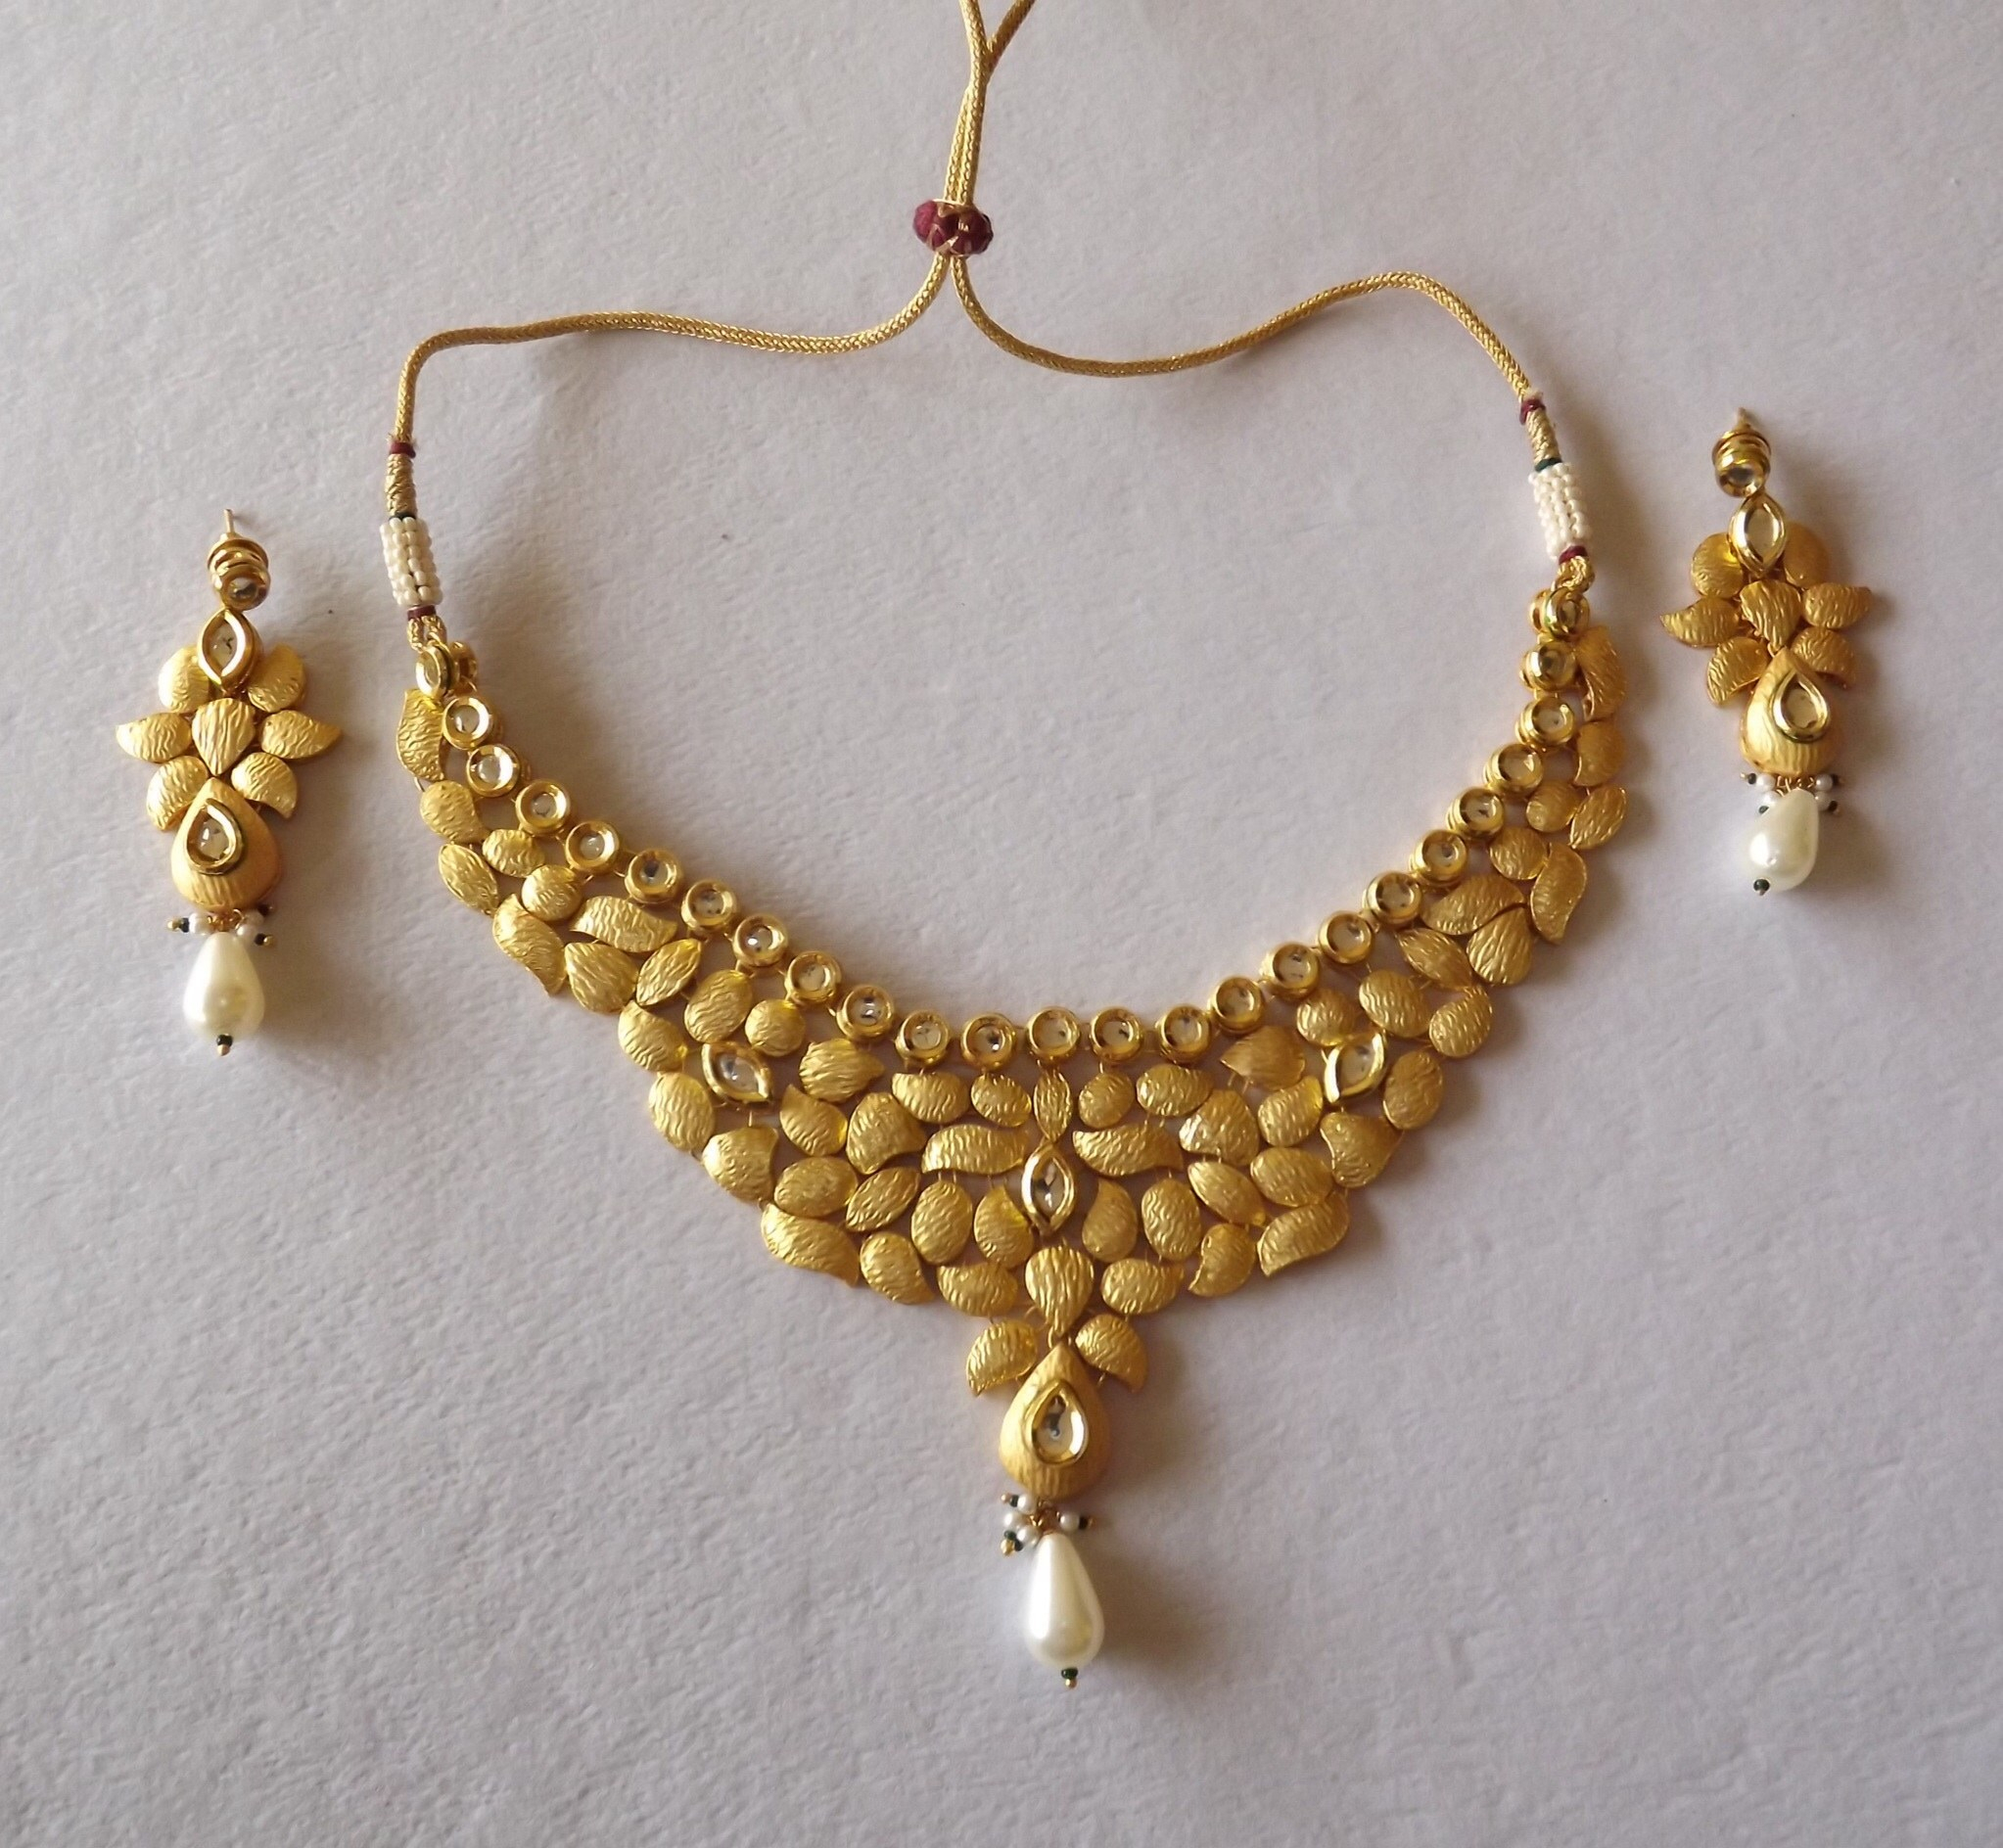 Photos of gold necklace Royalty Free Gold Necklace Pictures, Images and Stock Photos